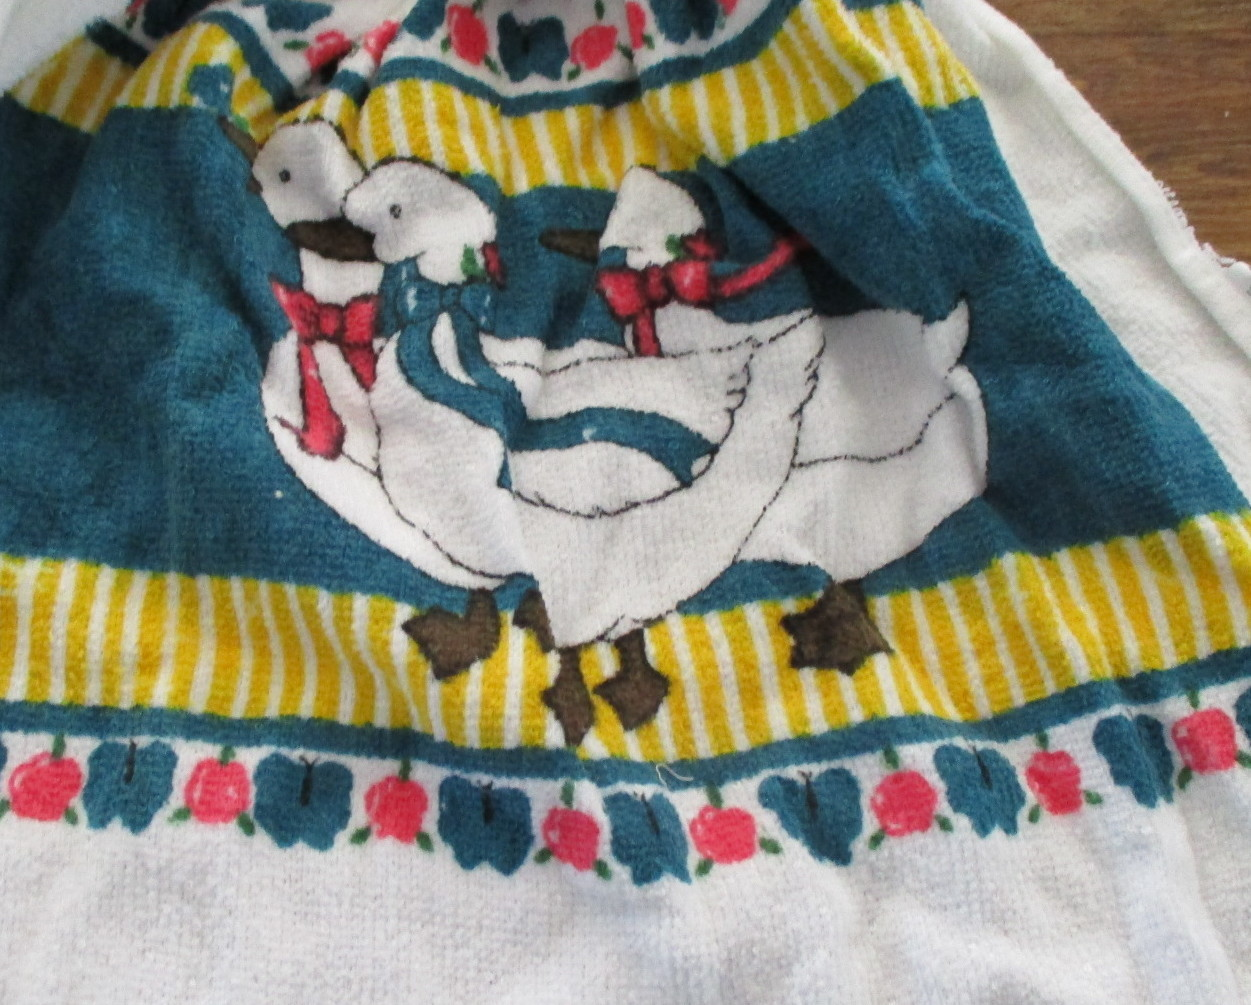 Kitchen Towel with Crocheted Top - Ducks